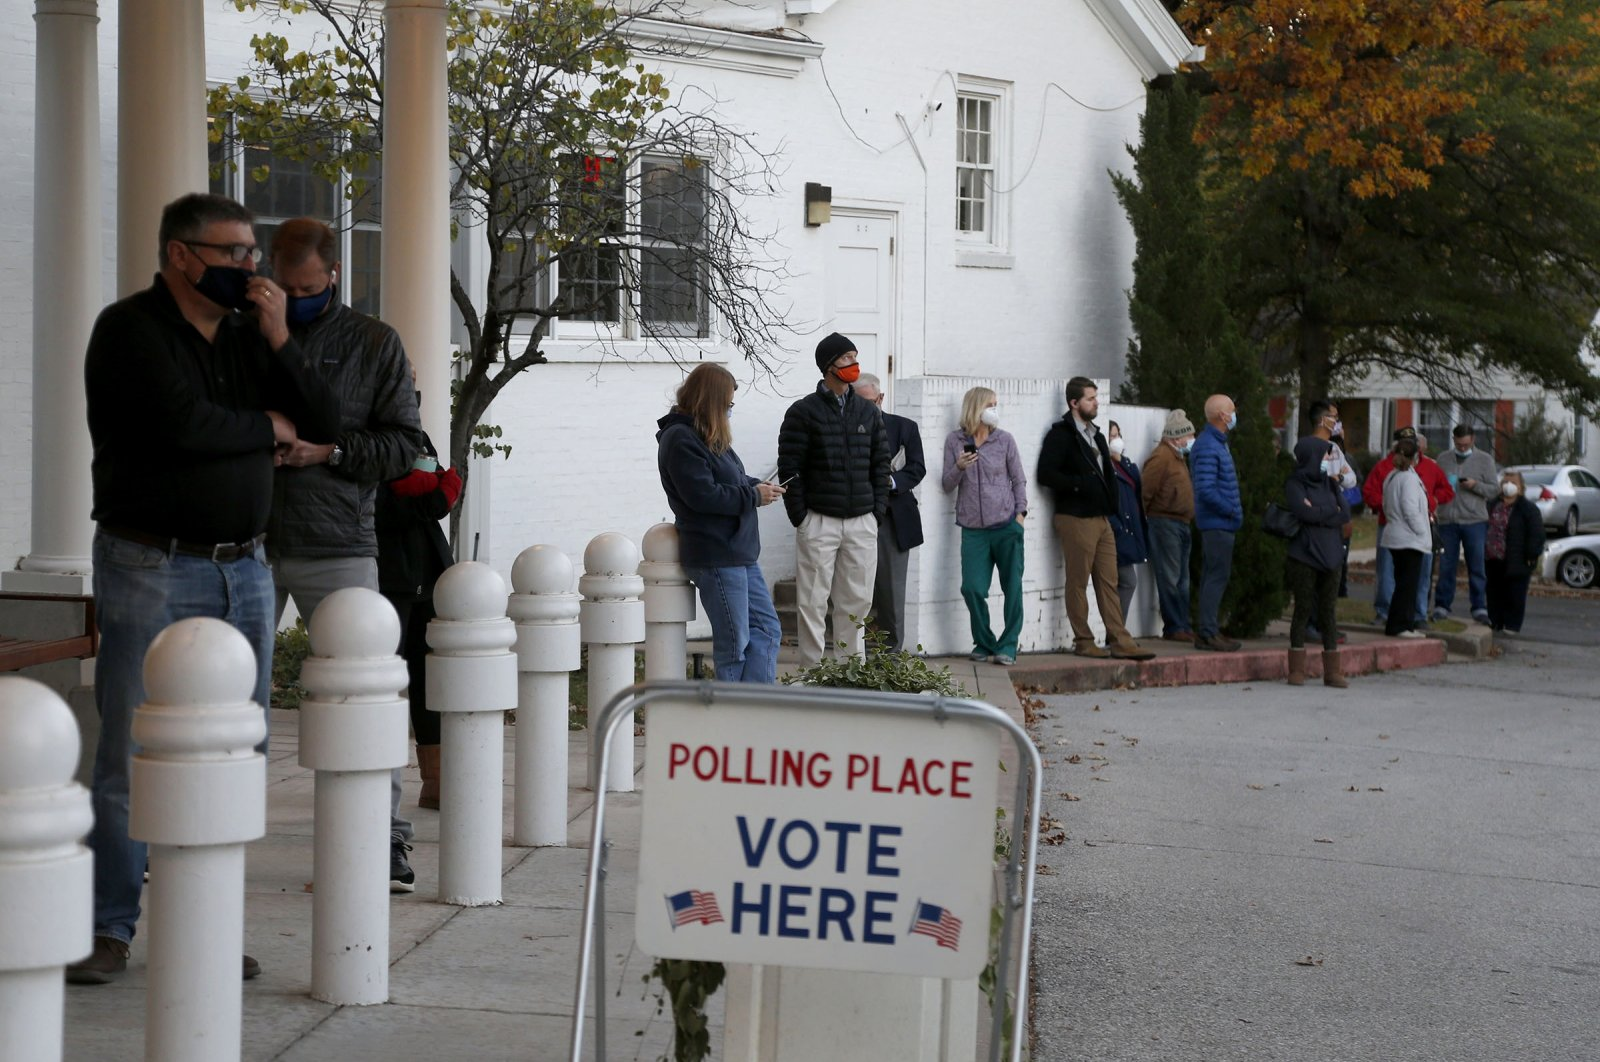 Voters wait in line before the polls open at All Souls Unitarian Church in Tulsa, Okla., U.S., Nov. 3, 2020. (AP Photo)